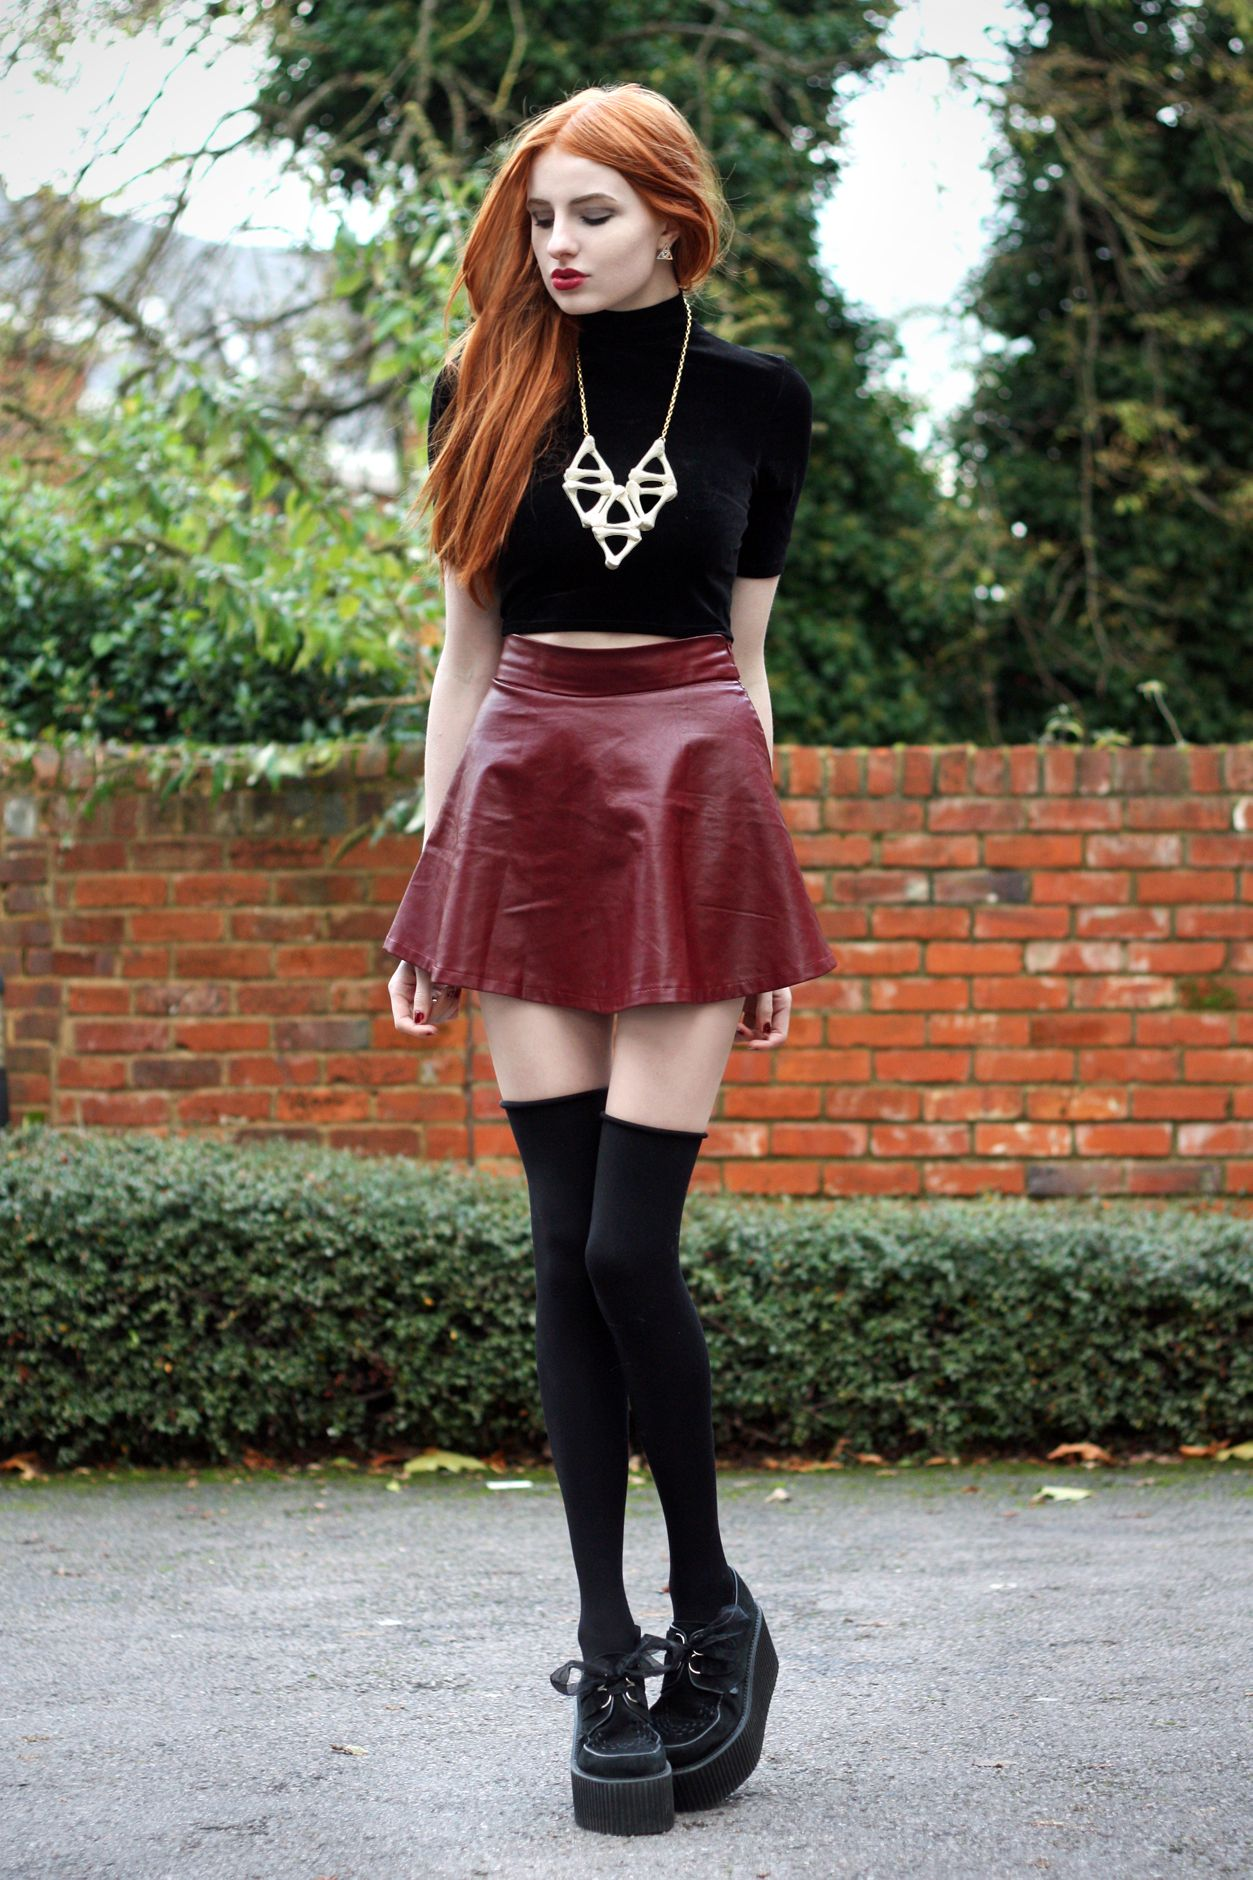 Style Grunge clothing pictures pictures